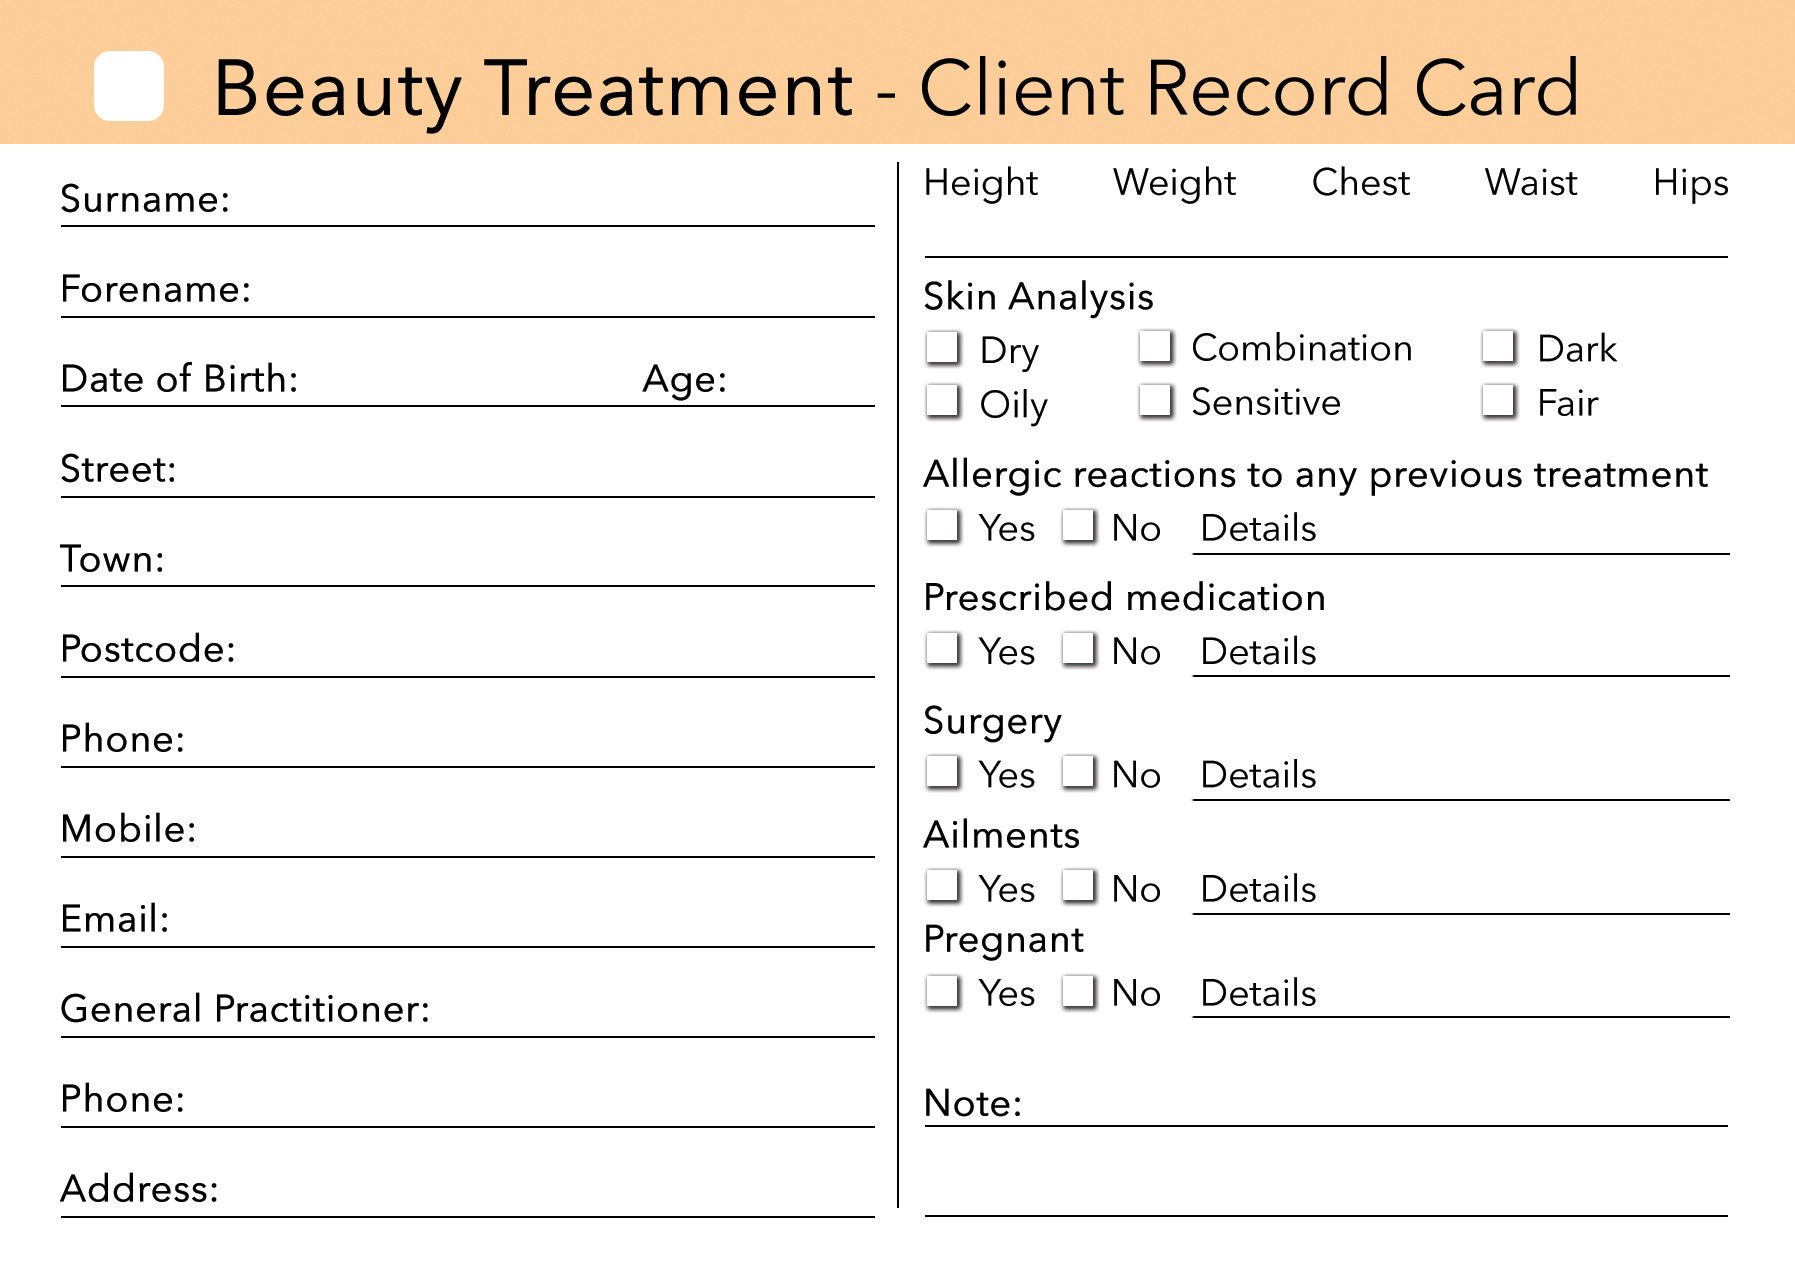 Beauty Client Card Treatment Consultation Card In